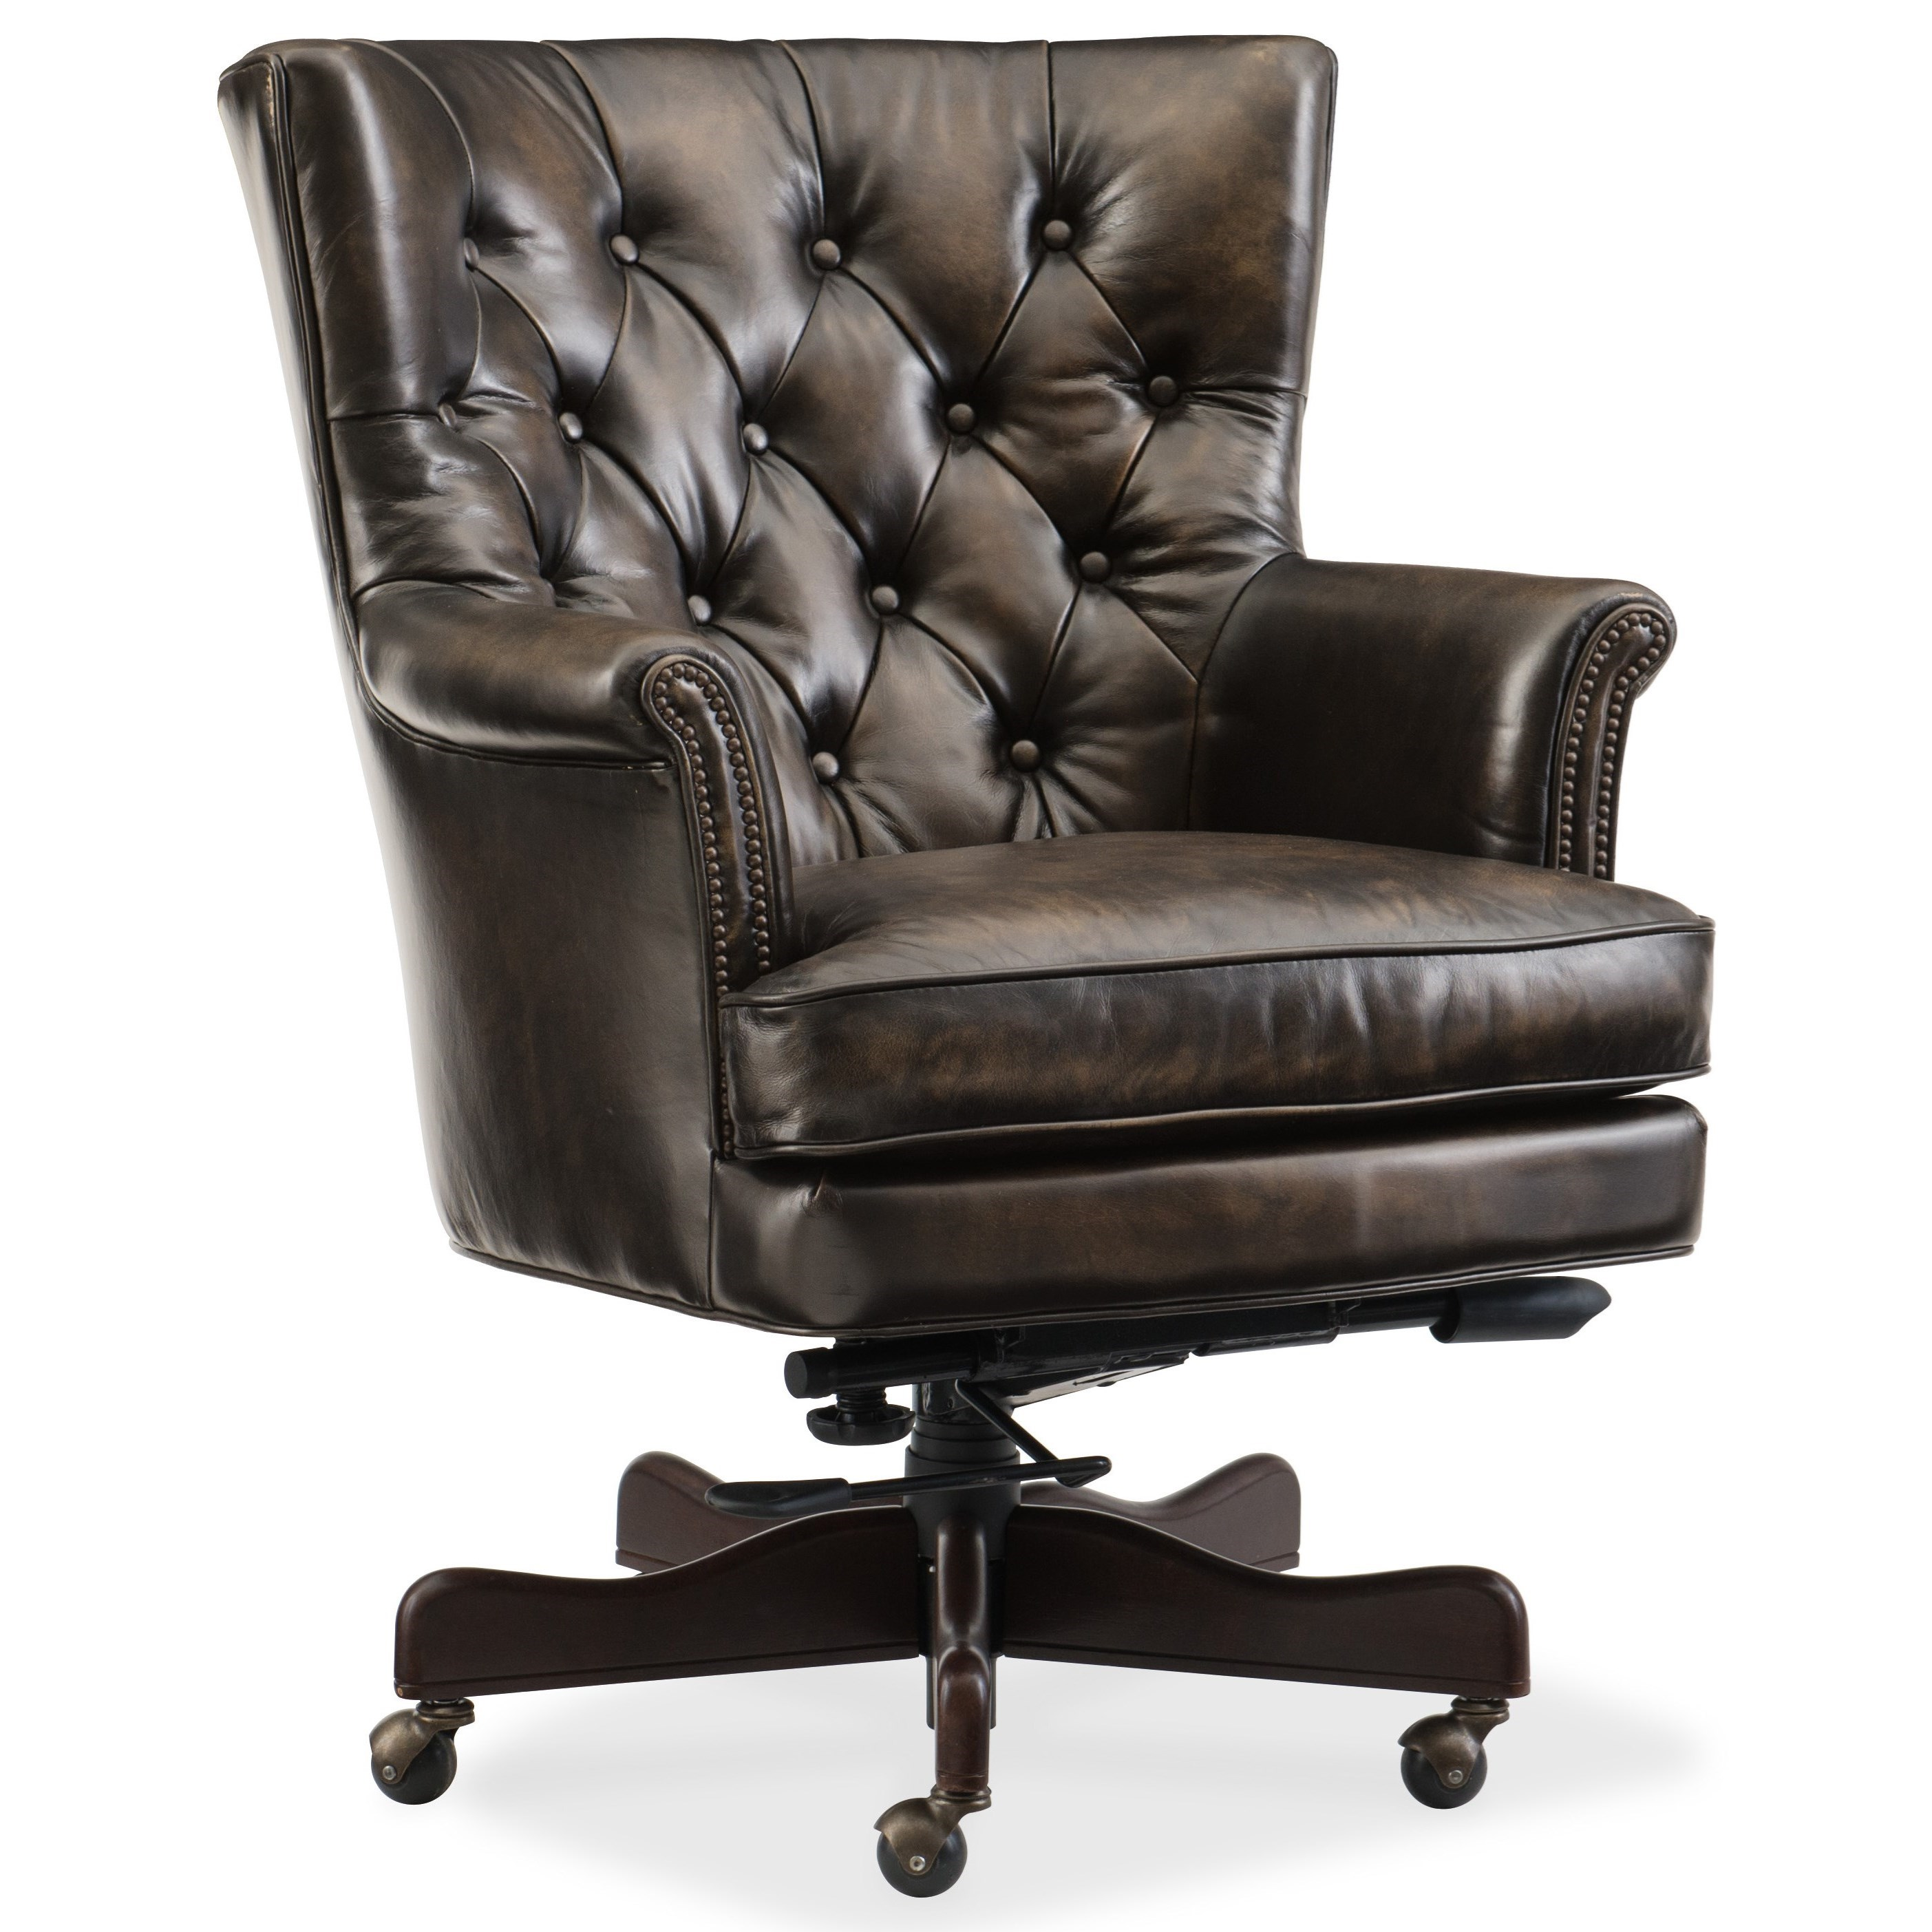 Tufted Leather Office Chair Executive Seating Theodore Leather Home Office Chair With Tufted Back By Hooker Furniture At Suburban Furniture